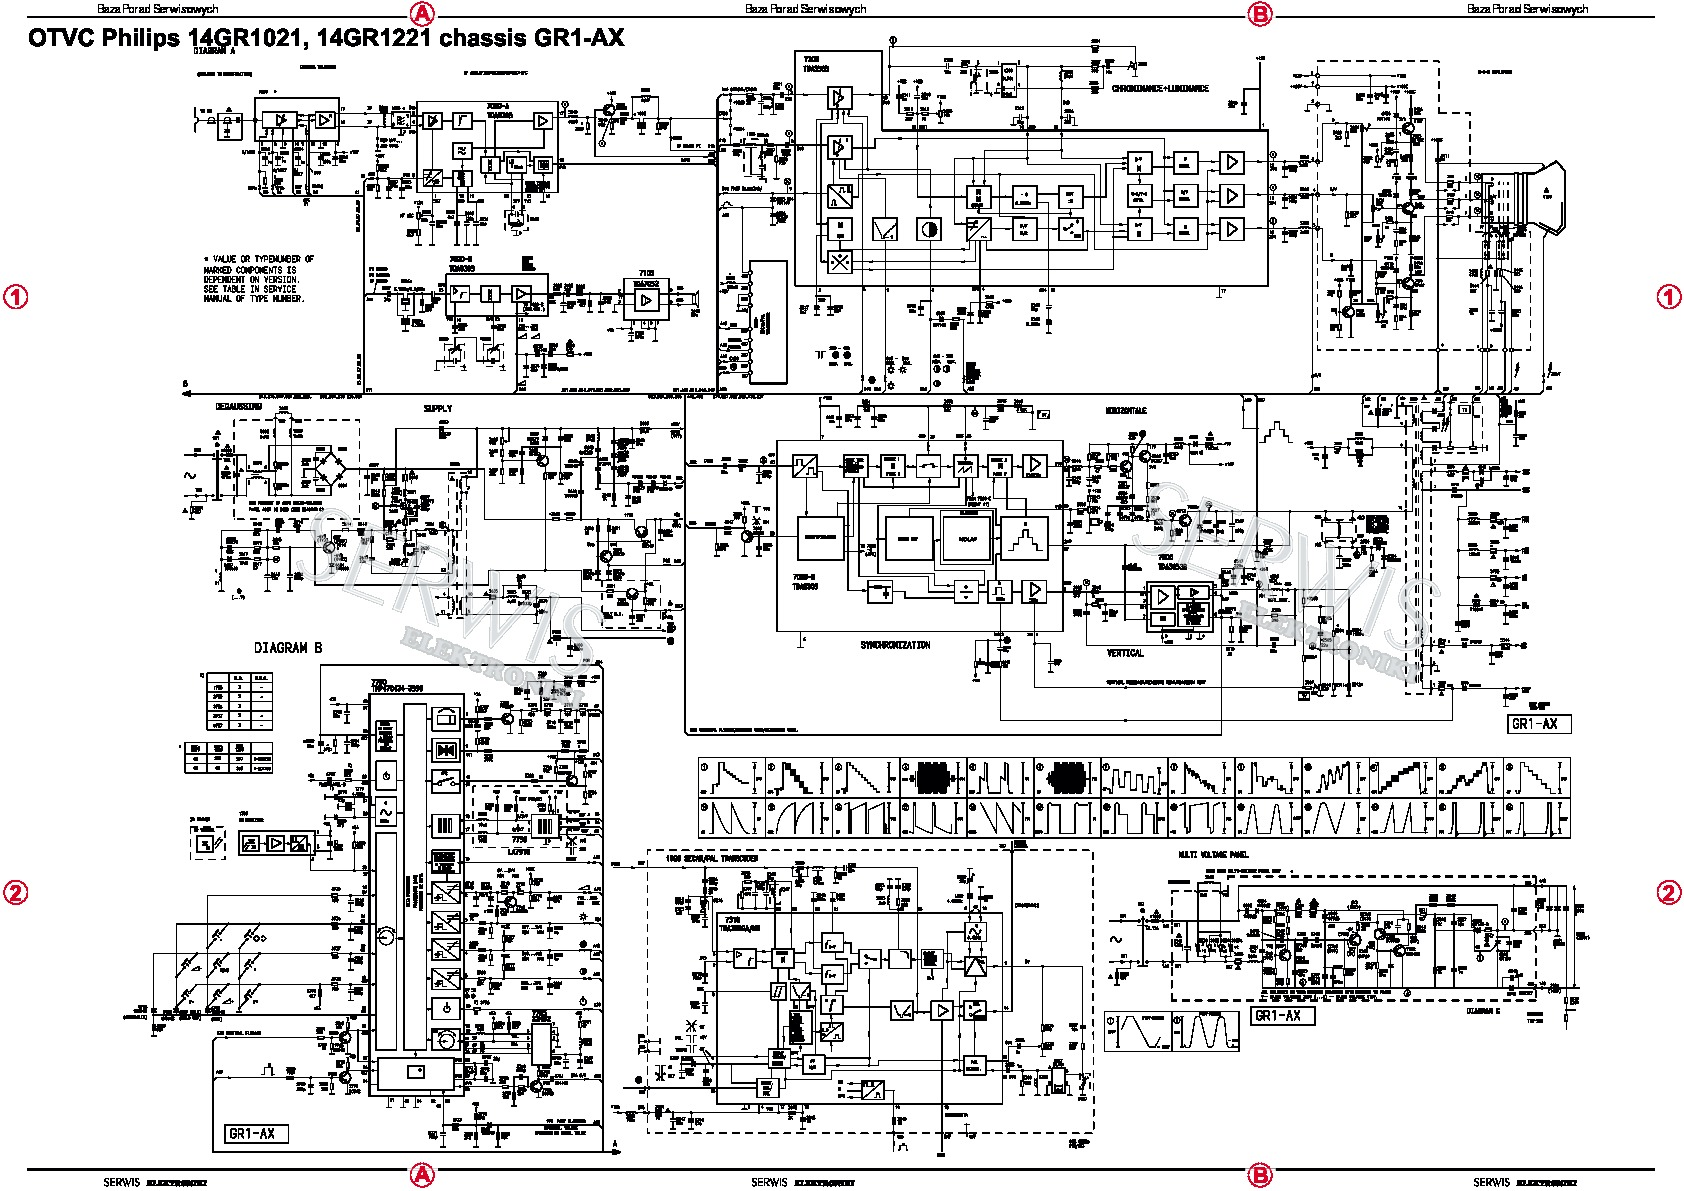 PHILIPS 14gr1236 chasis GR1 AX Chassis GR1 AX [1] pdf